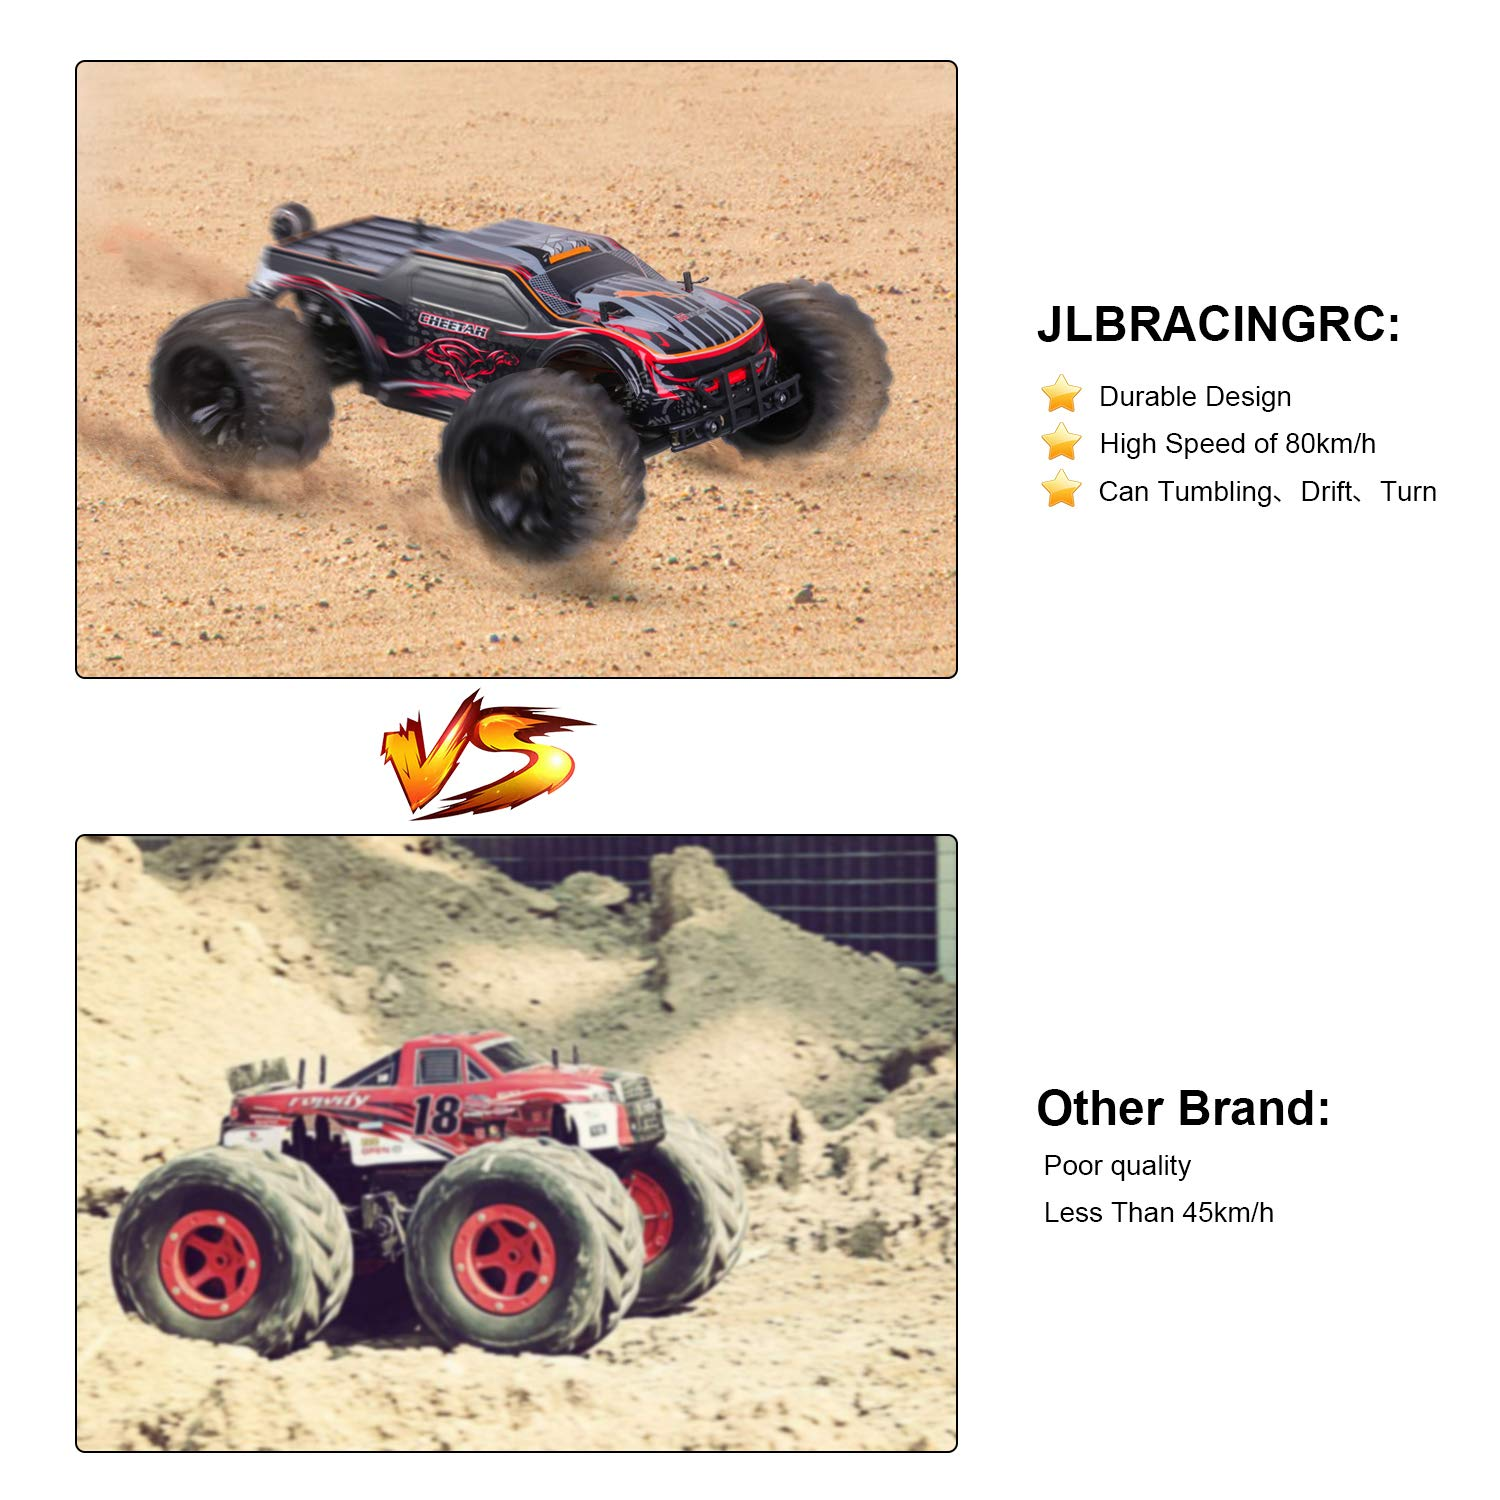 JLBRACINGRC Super Fast 1/10 Scale Cheetah RC Car, 80 KM/H 4WD 2.4GHZ RC Truck with 120A ESC IPX7 Waterproof 3670 2500KV Brushless Motor Wheelie Function 4x4 Off Road RTR RC Monster Truck for Adults by JLBRACINGRC (Image #7)